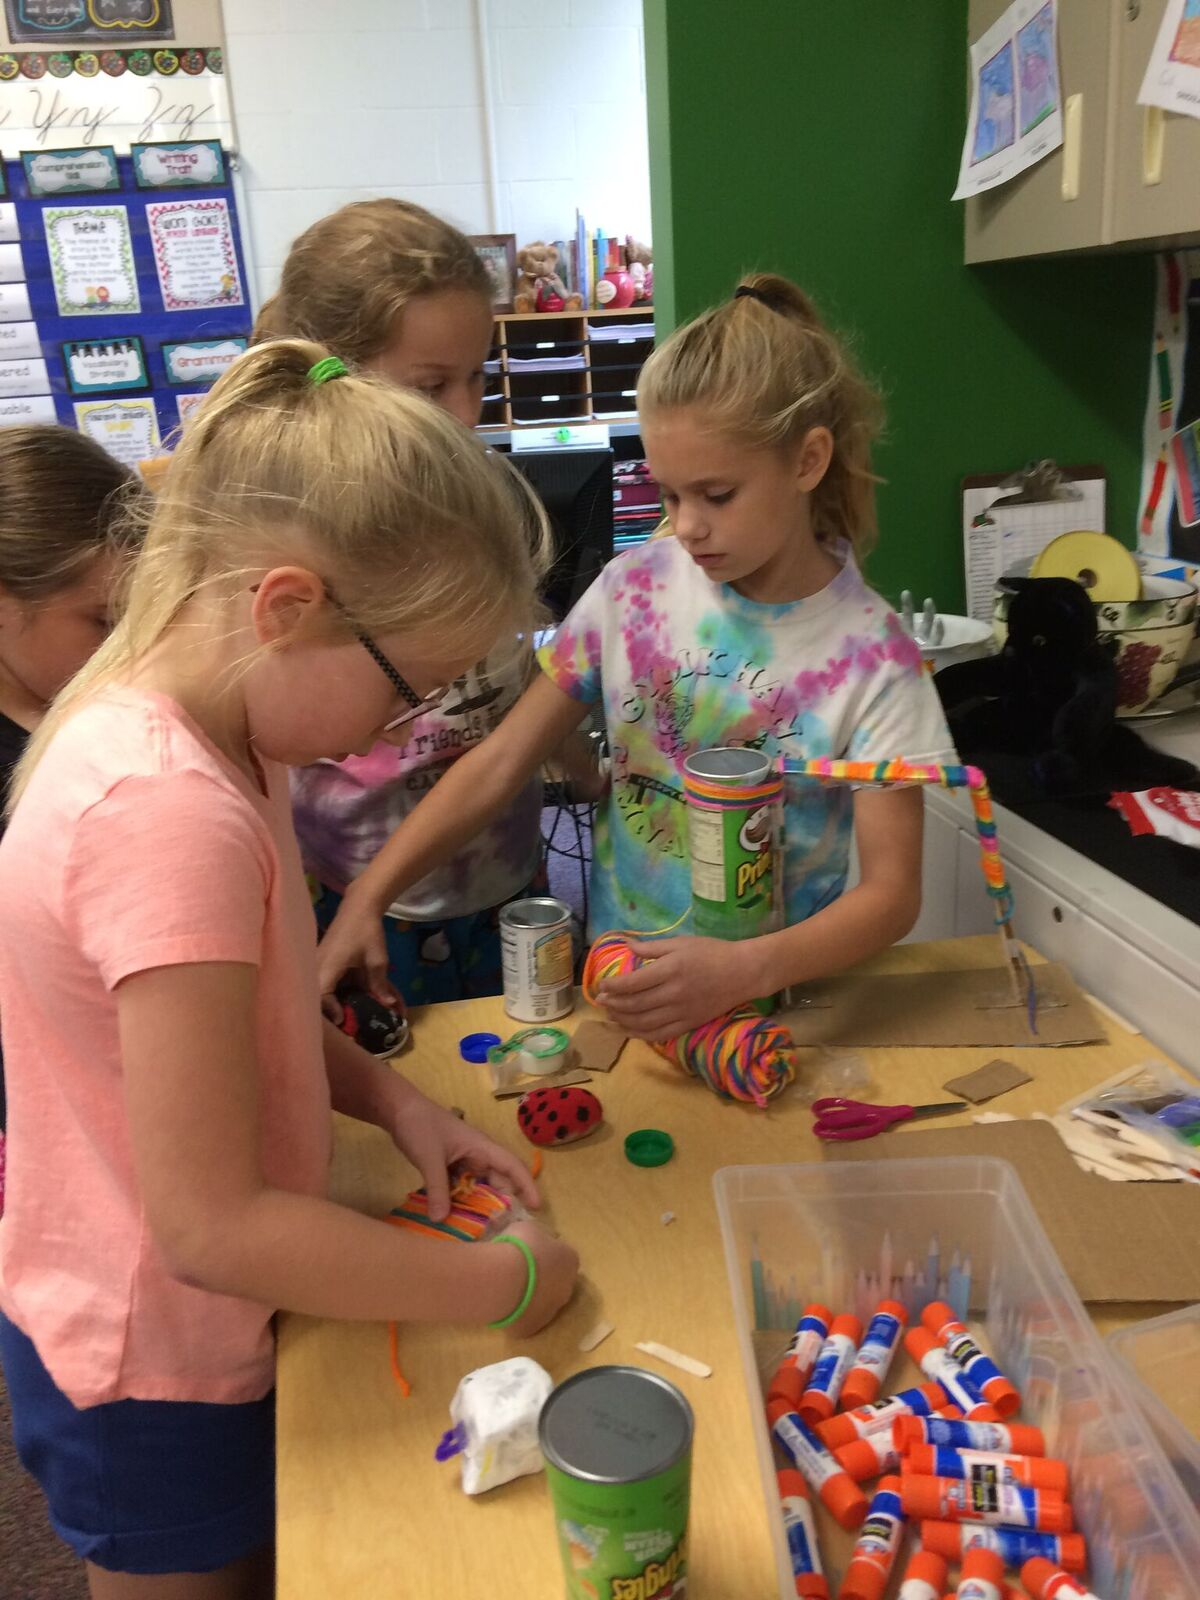 Working on their Pet Rock Playground item